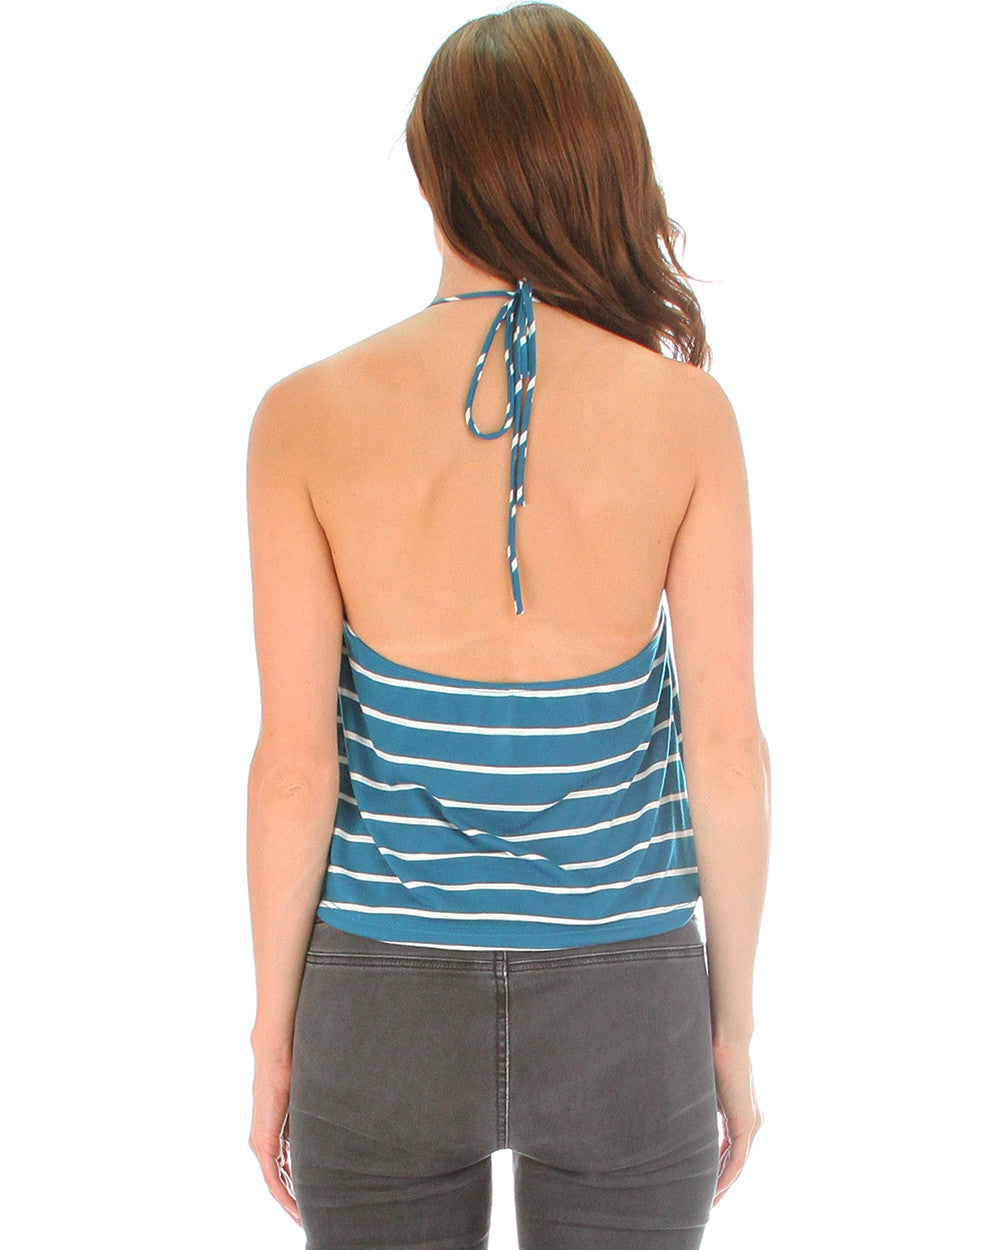 Dapperly Draped Striped Halter Top In Teal